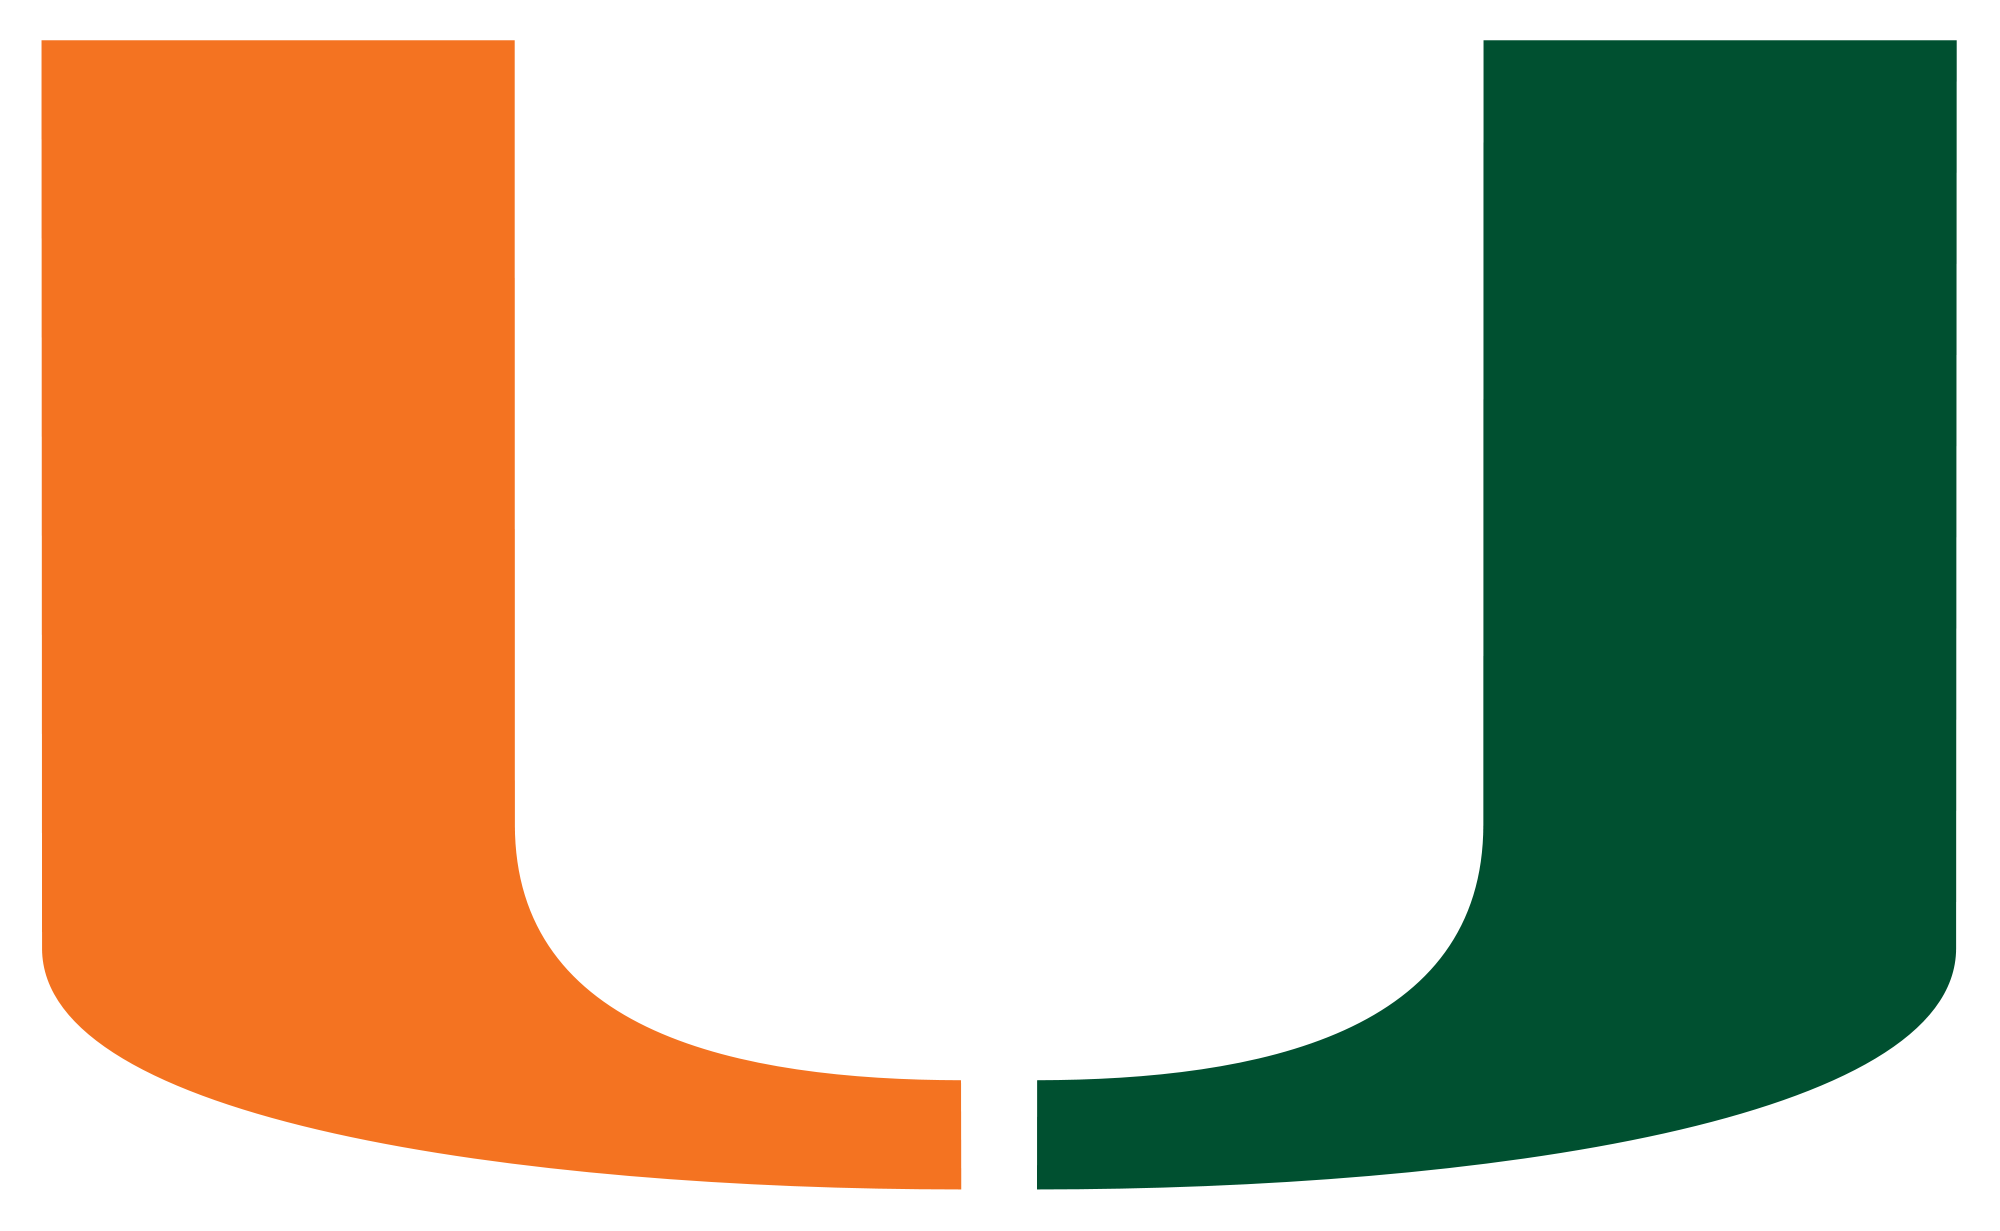 2000x1231 Collection Of University Of Miami Clipart High Quality, Free